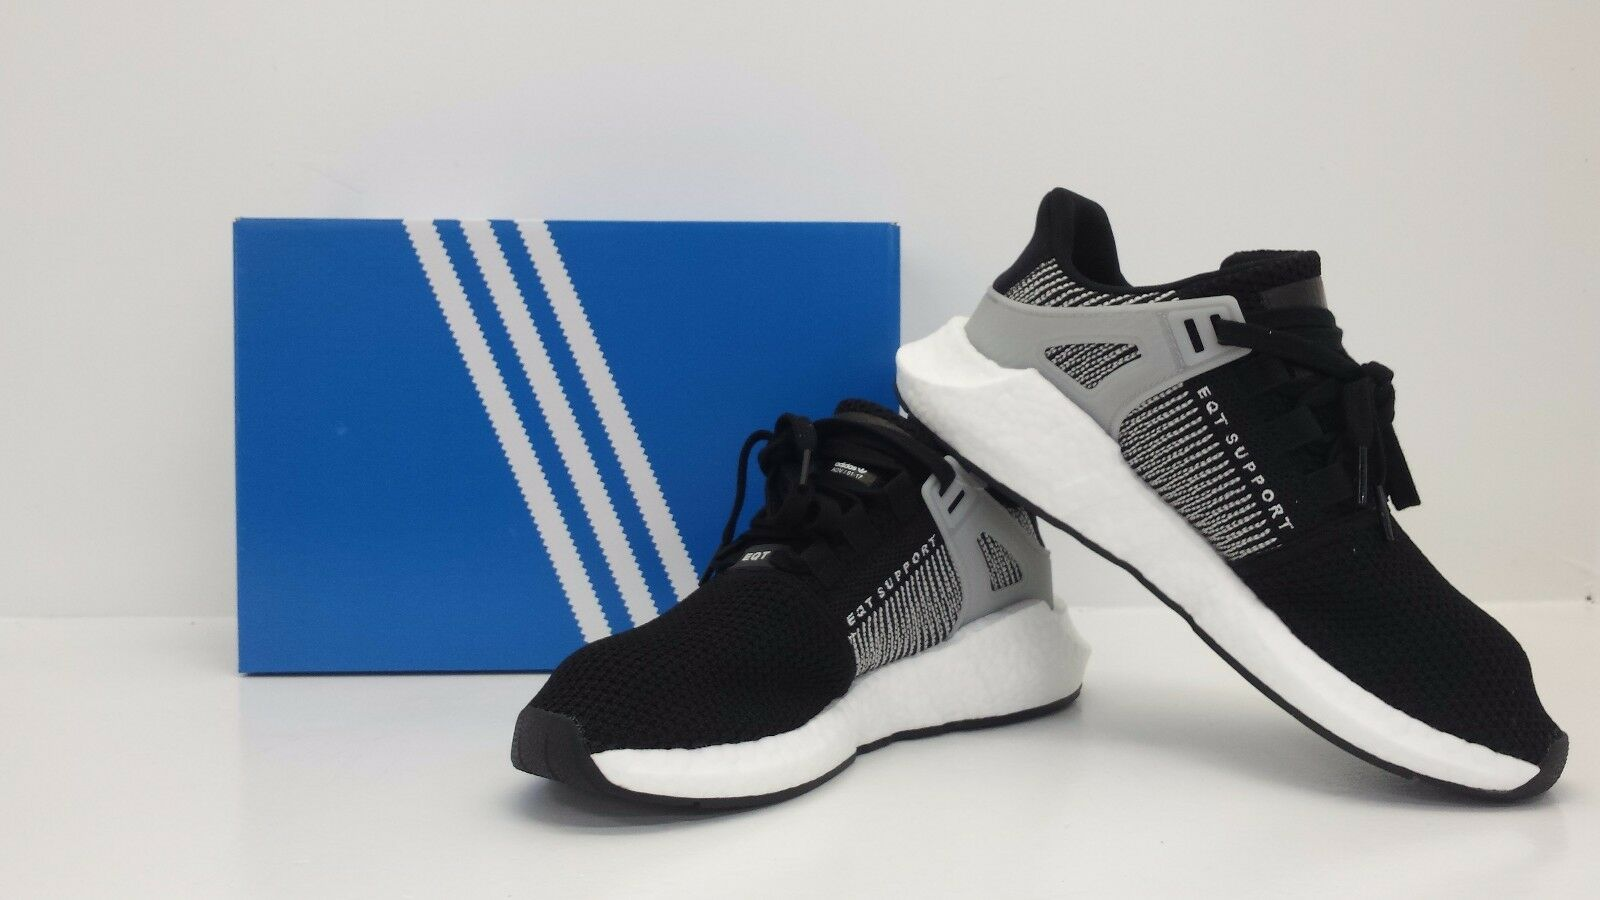 Adidas ORIGINALS MEN'S BY9509 EQT SUPPORT 93/17 BLACK/WHITE BY9509 MEN'S - BRAND NEW IN BOX e29d51